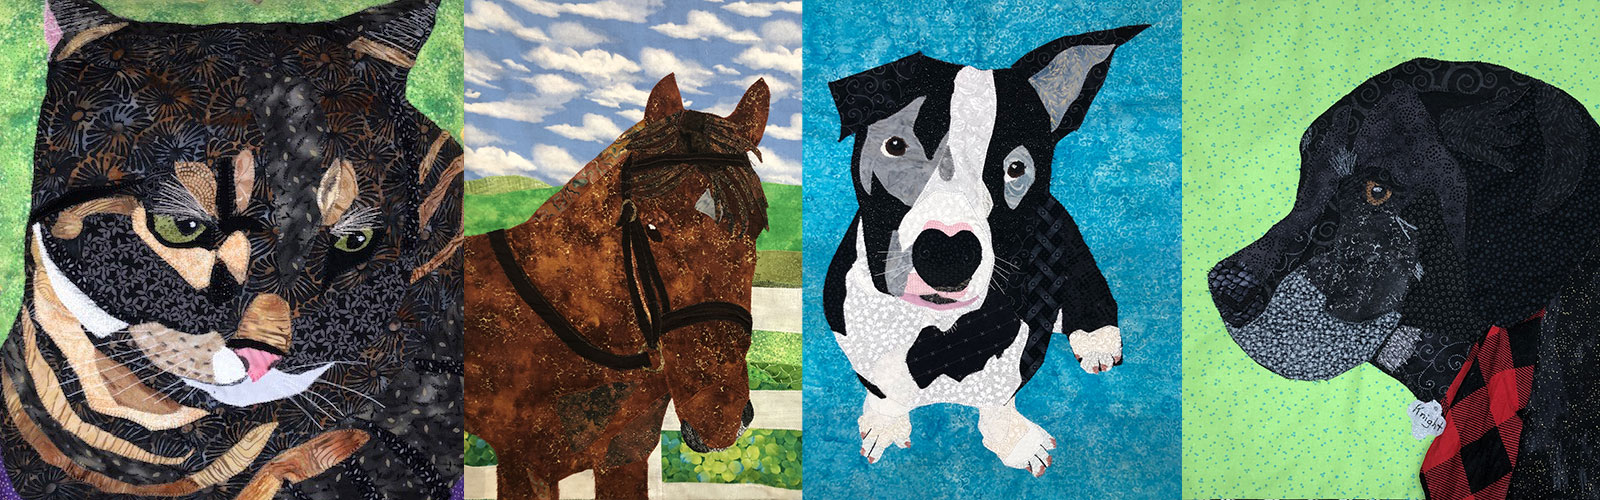 custom pet portraits of a cat, horse, and two dogs